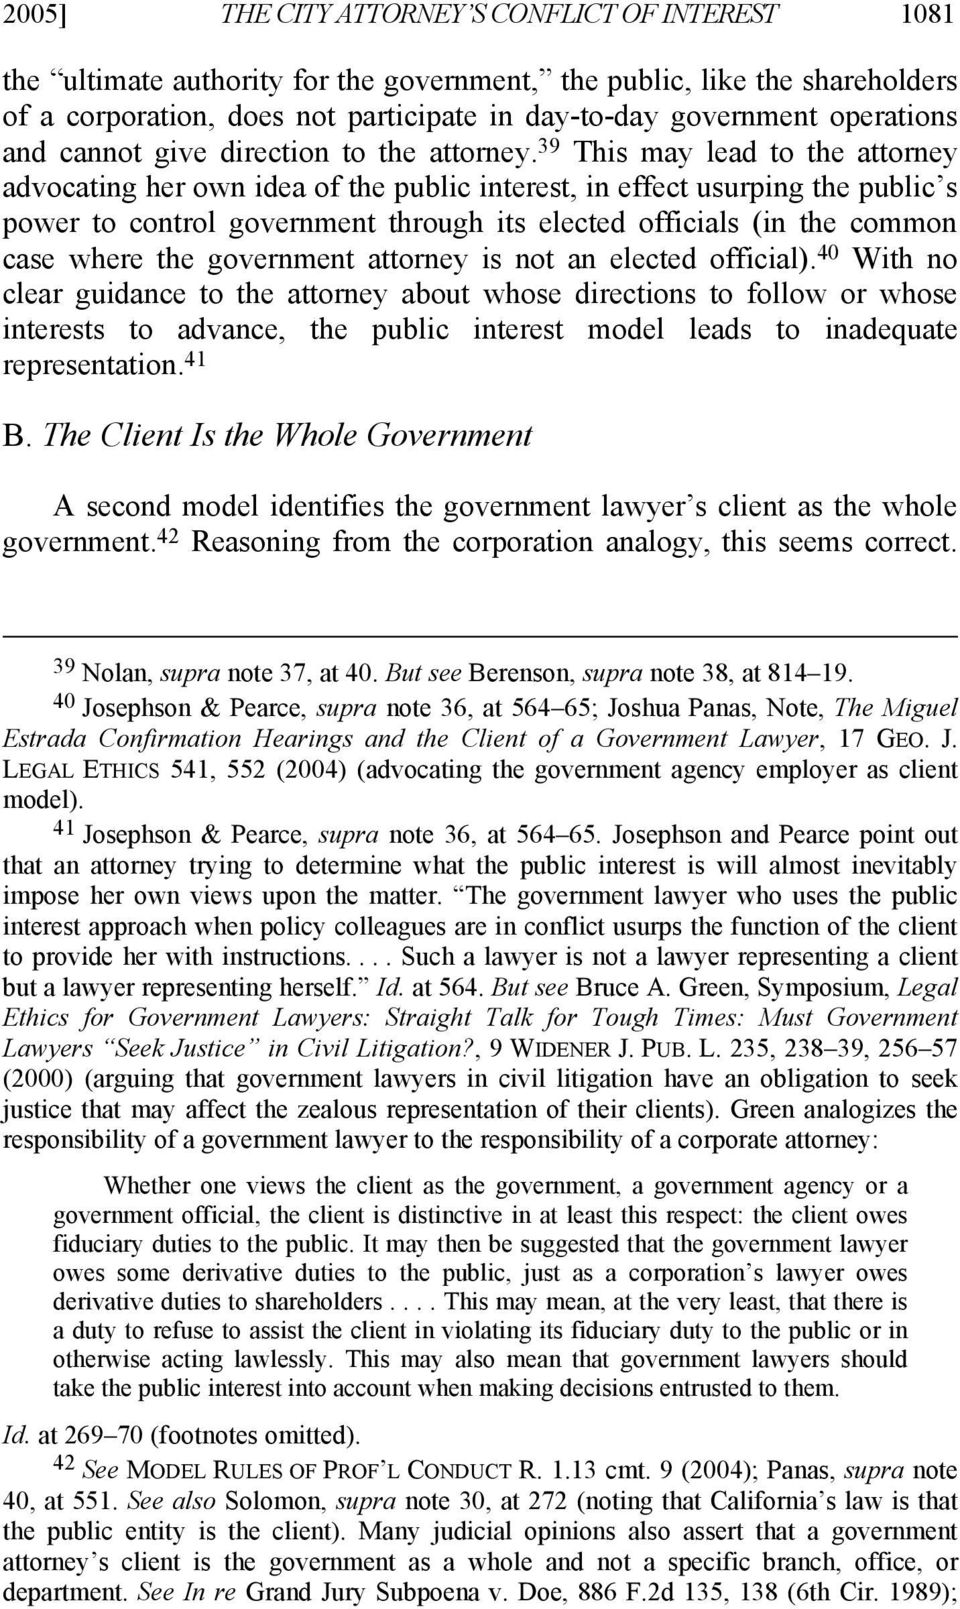 39 This may lead to the attorney advocating her own idea of the public interest, in effect usurping the public s power to control government through its elected officials (in the common case where